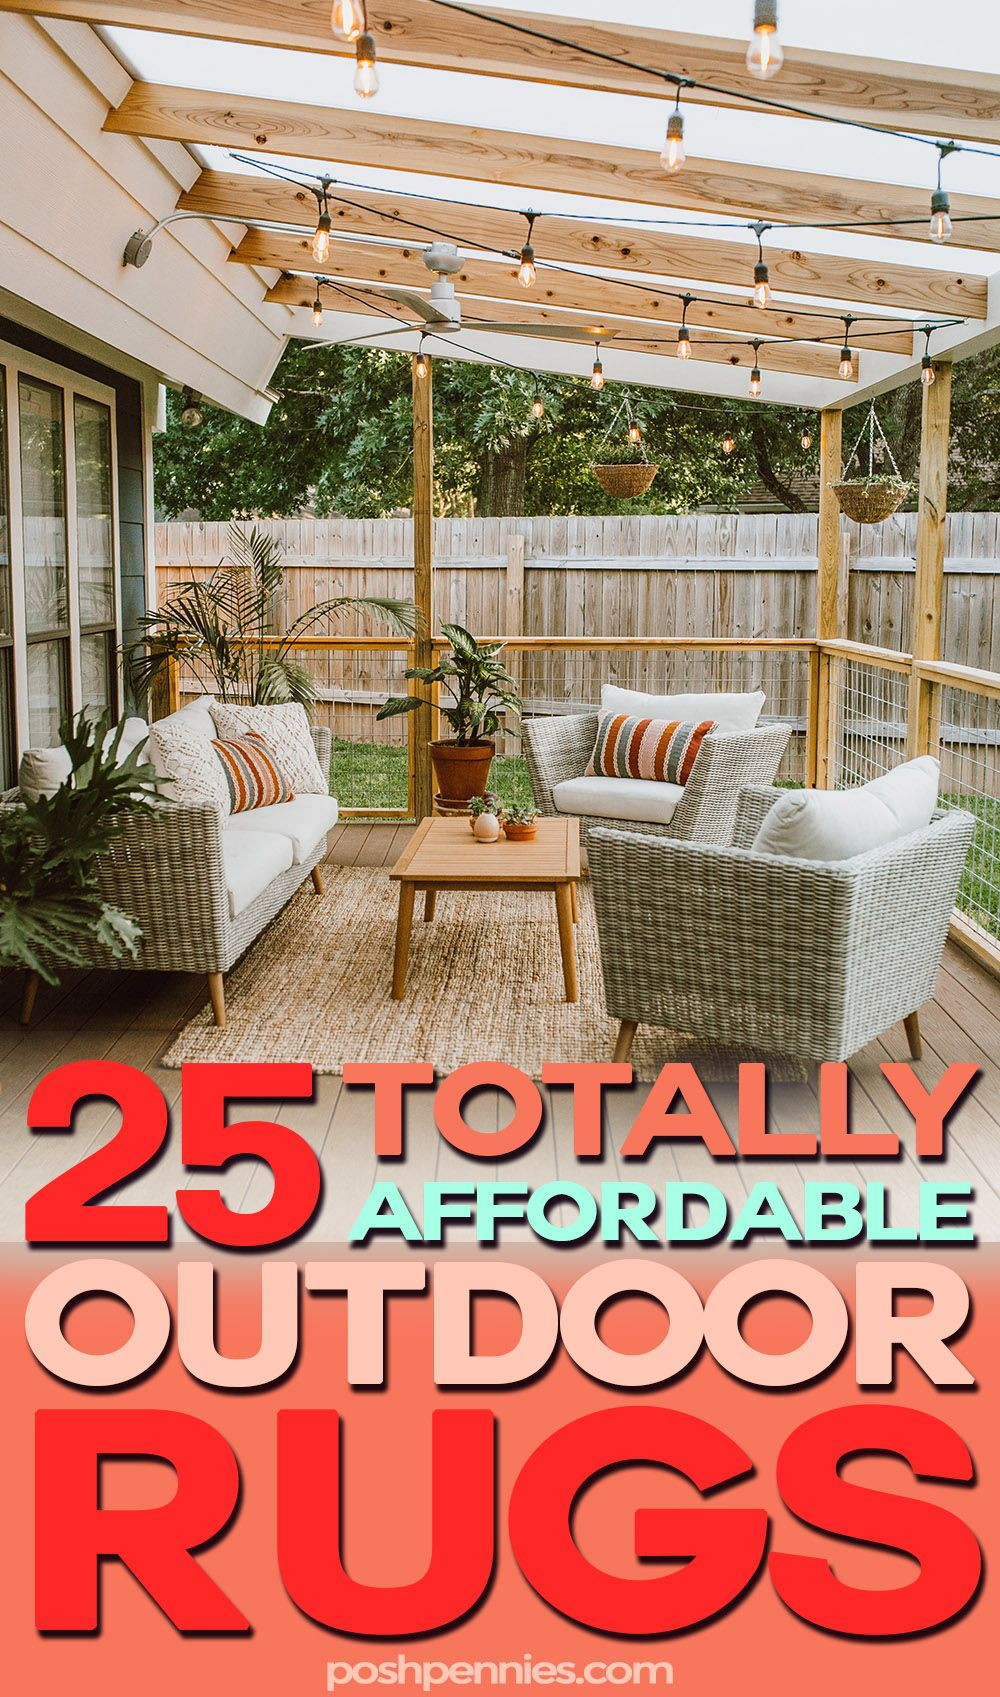 The Most Affordable Outdoor Patio Rugs #outdoorrugs